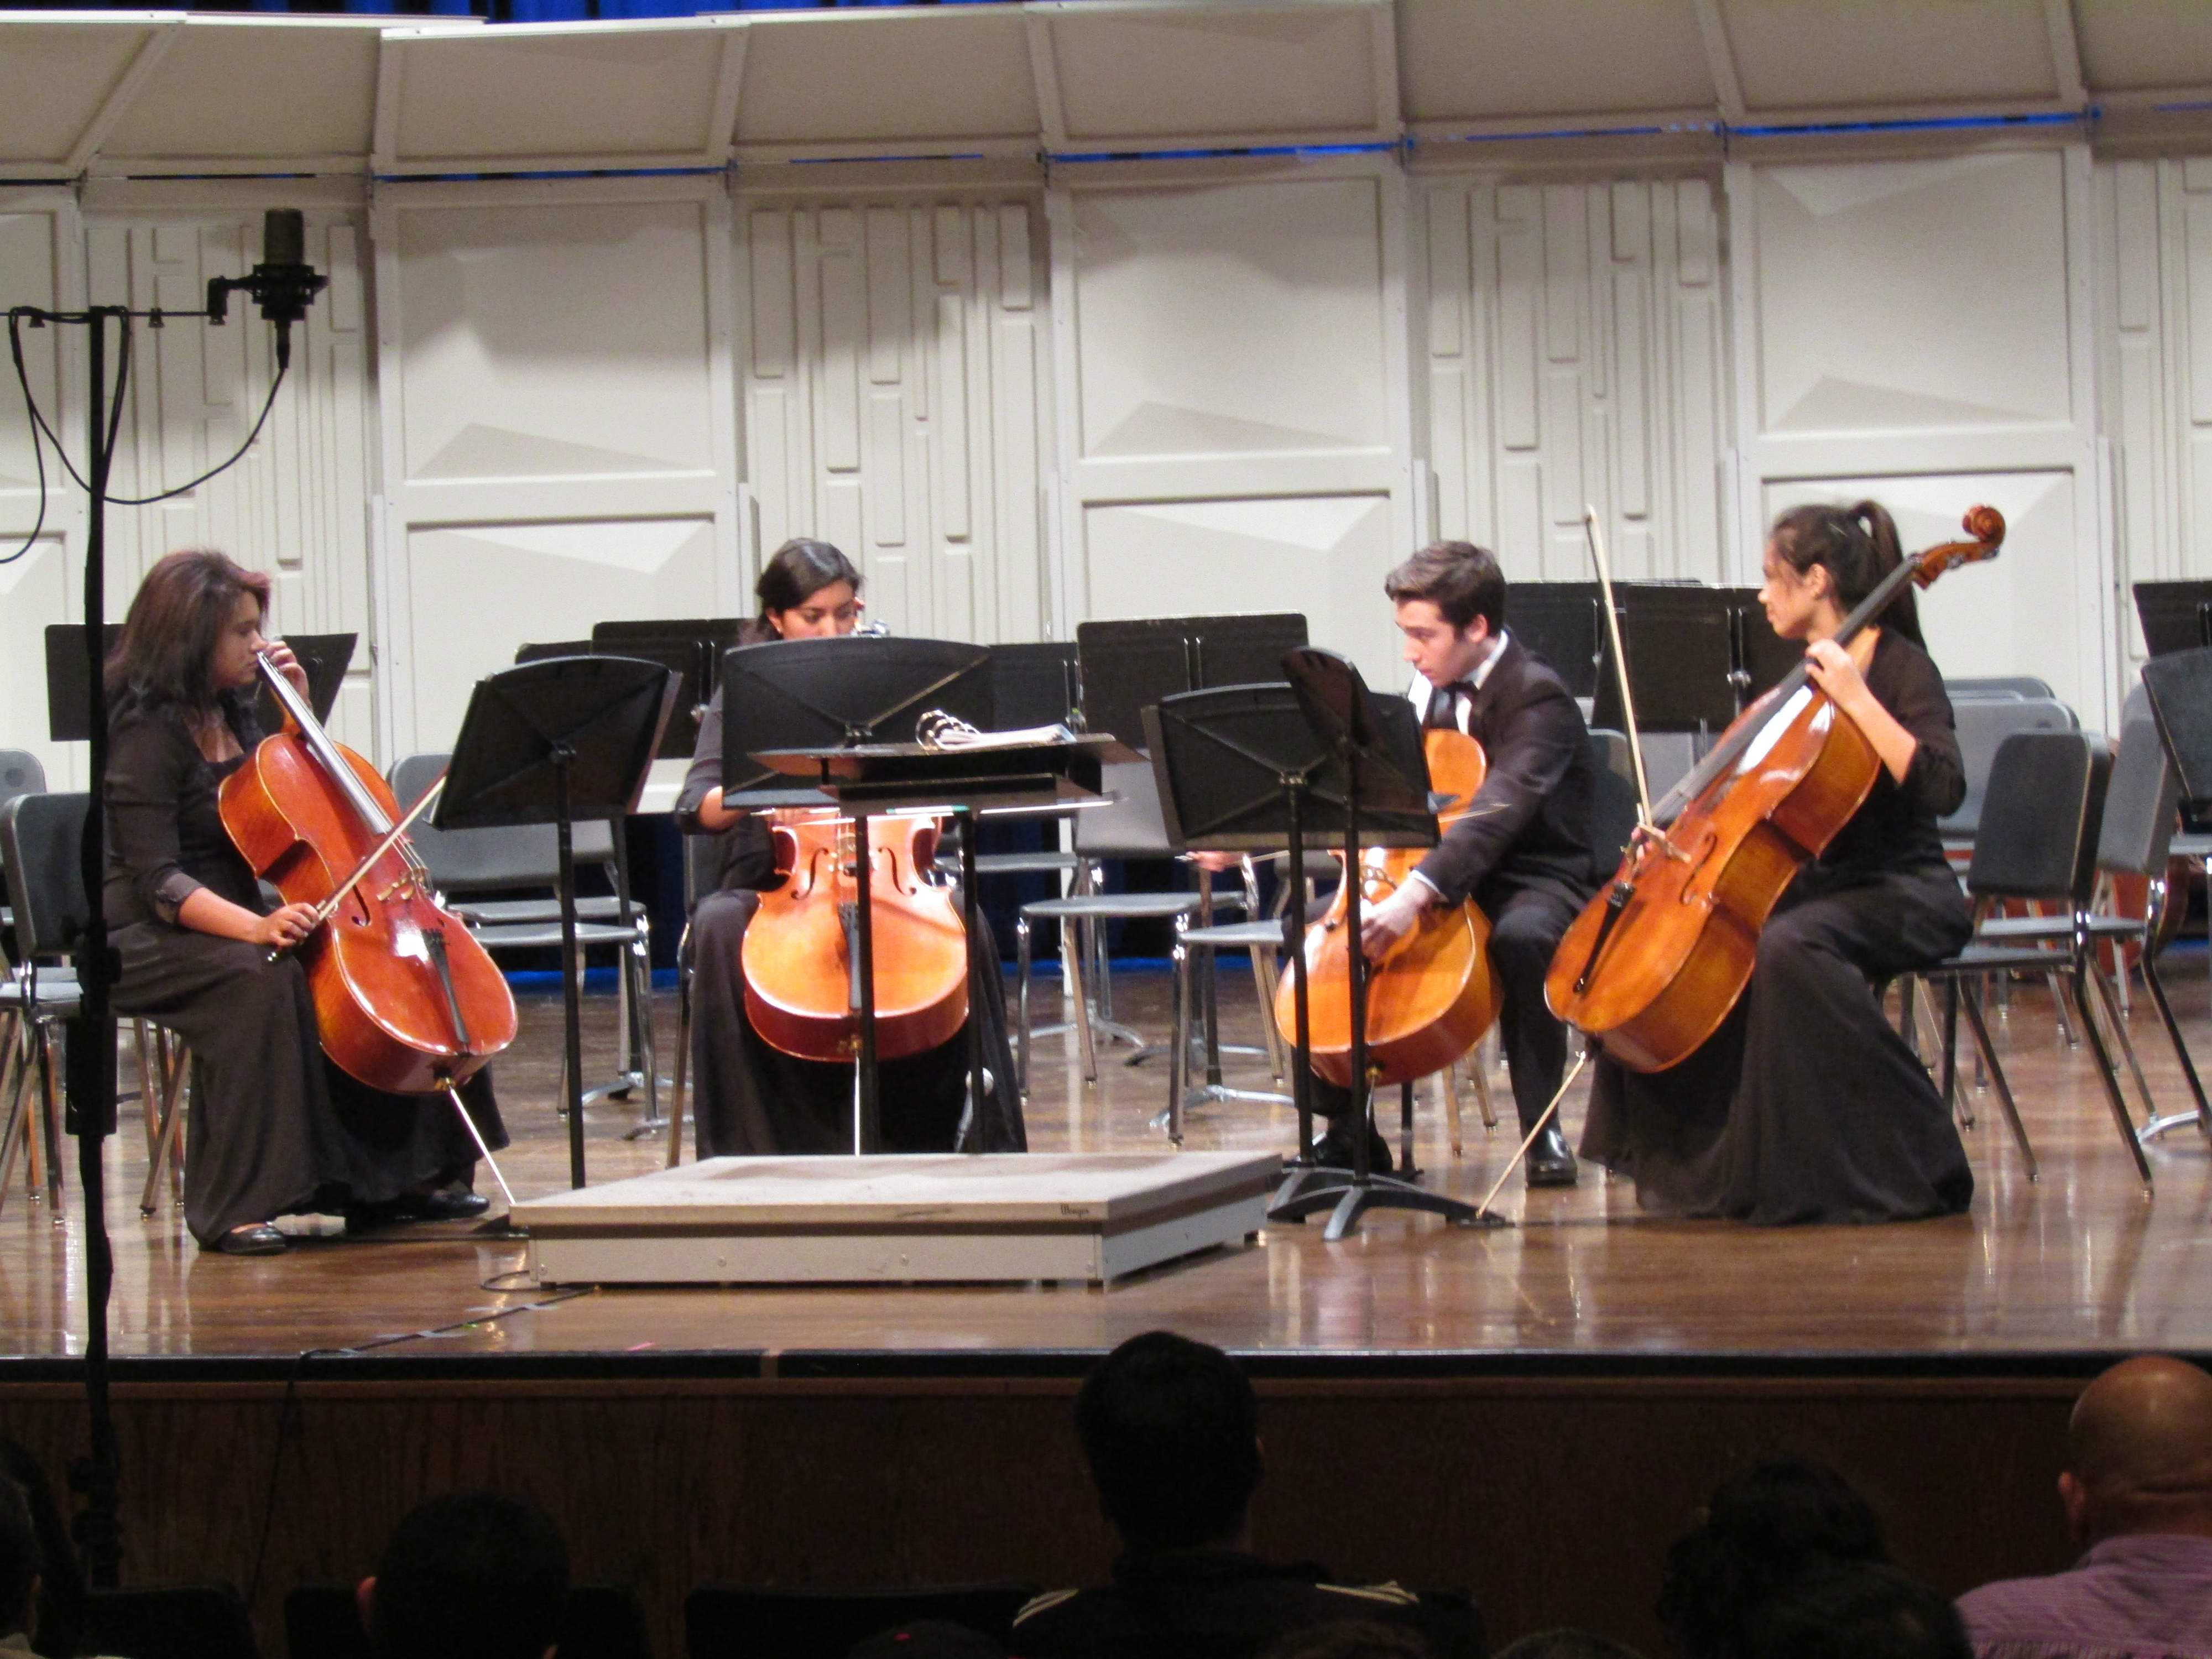 The concert included performances from the concert orchestra, chamber orchestra, cello choir, and the combined orchestra. Seniors Jeanna Brown and  Vanessa Hasbun as well as sophomores Jack Gillespie and Avalon Smith preform as the cello choir.